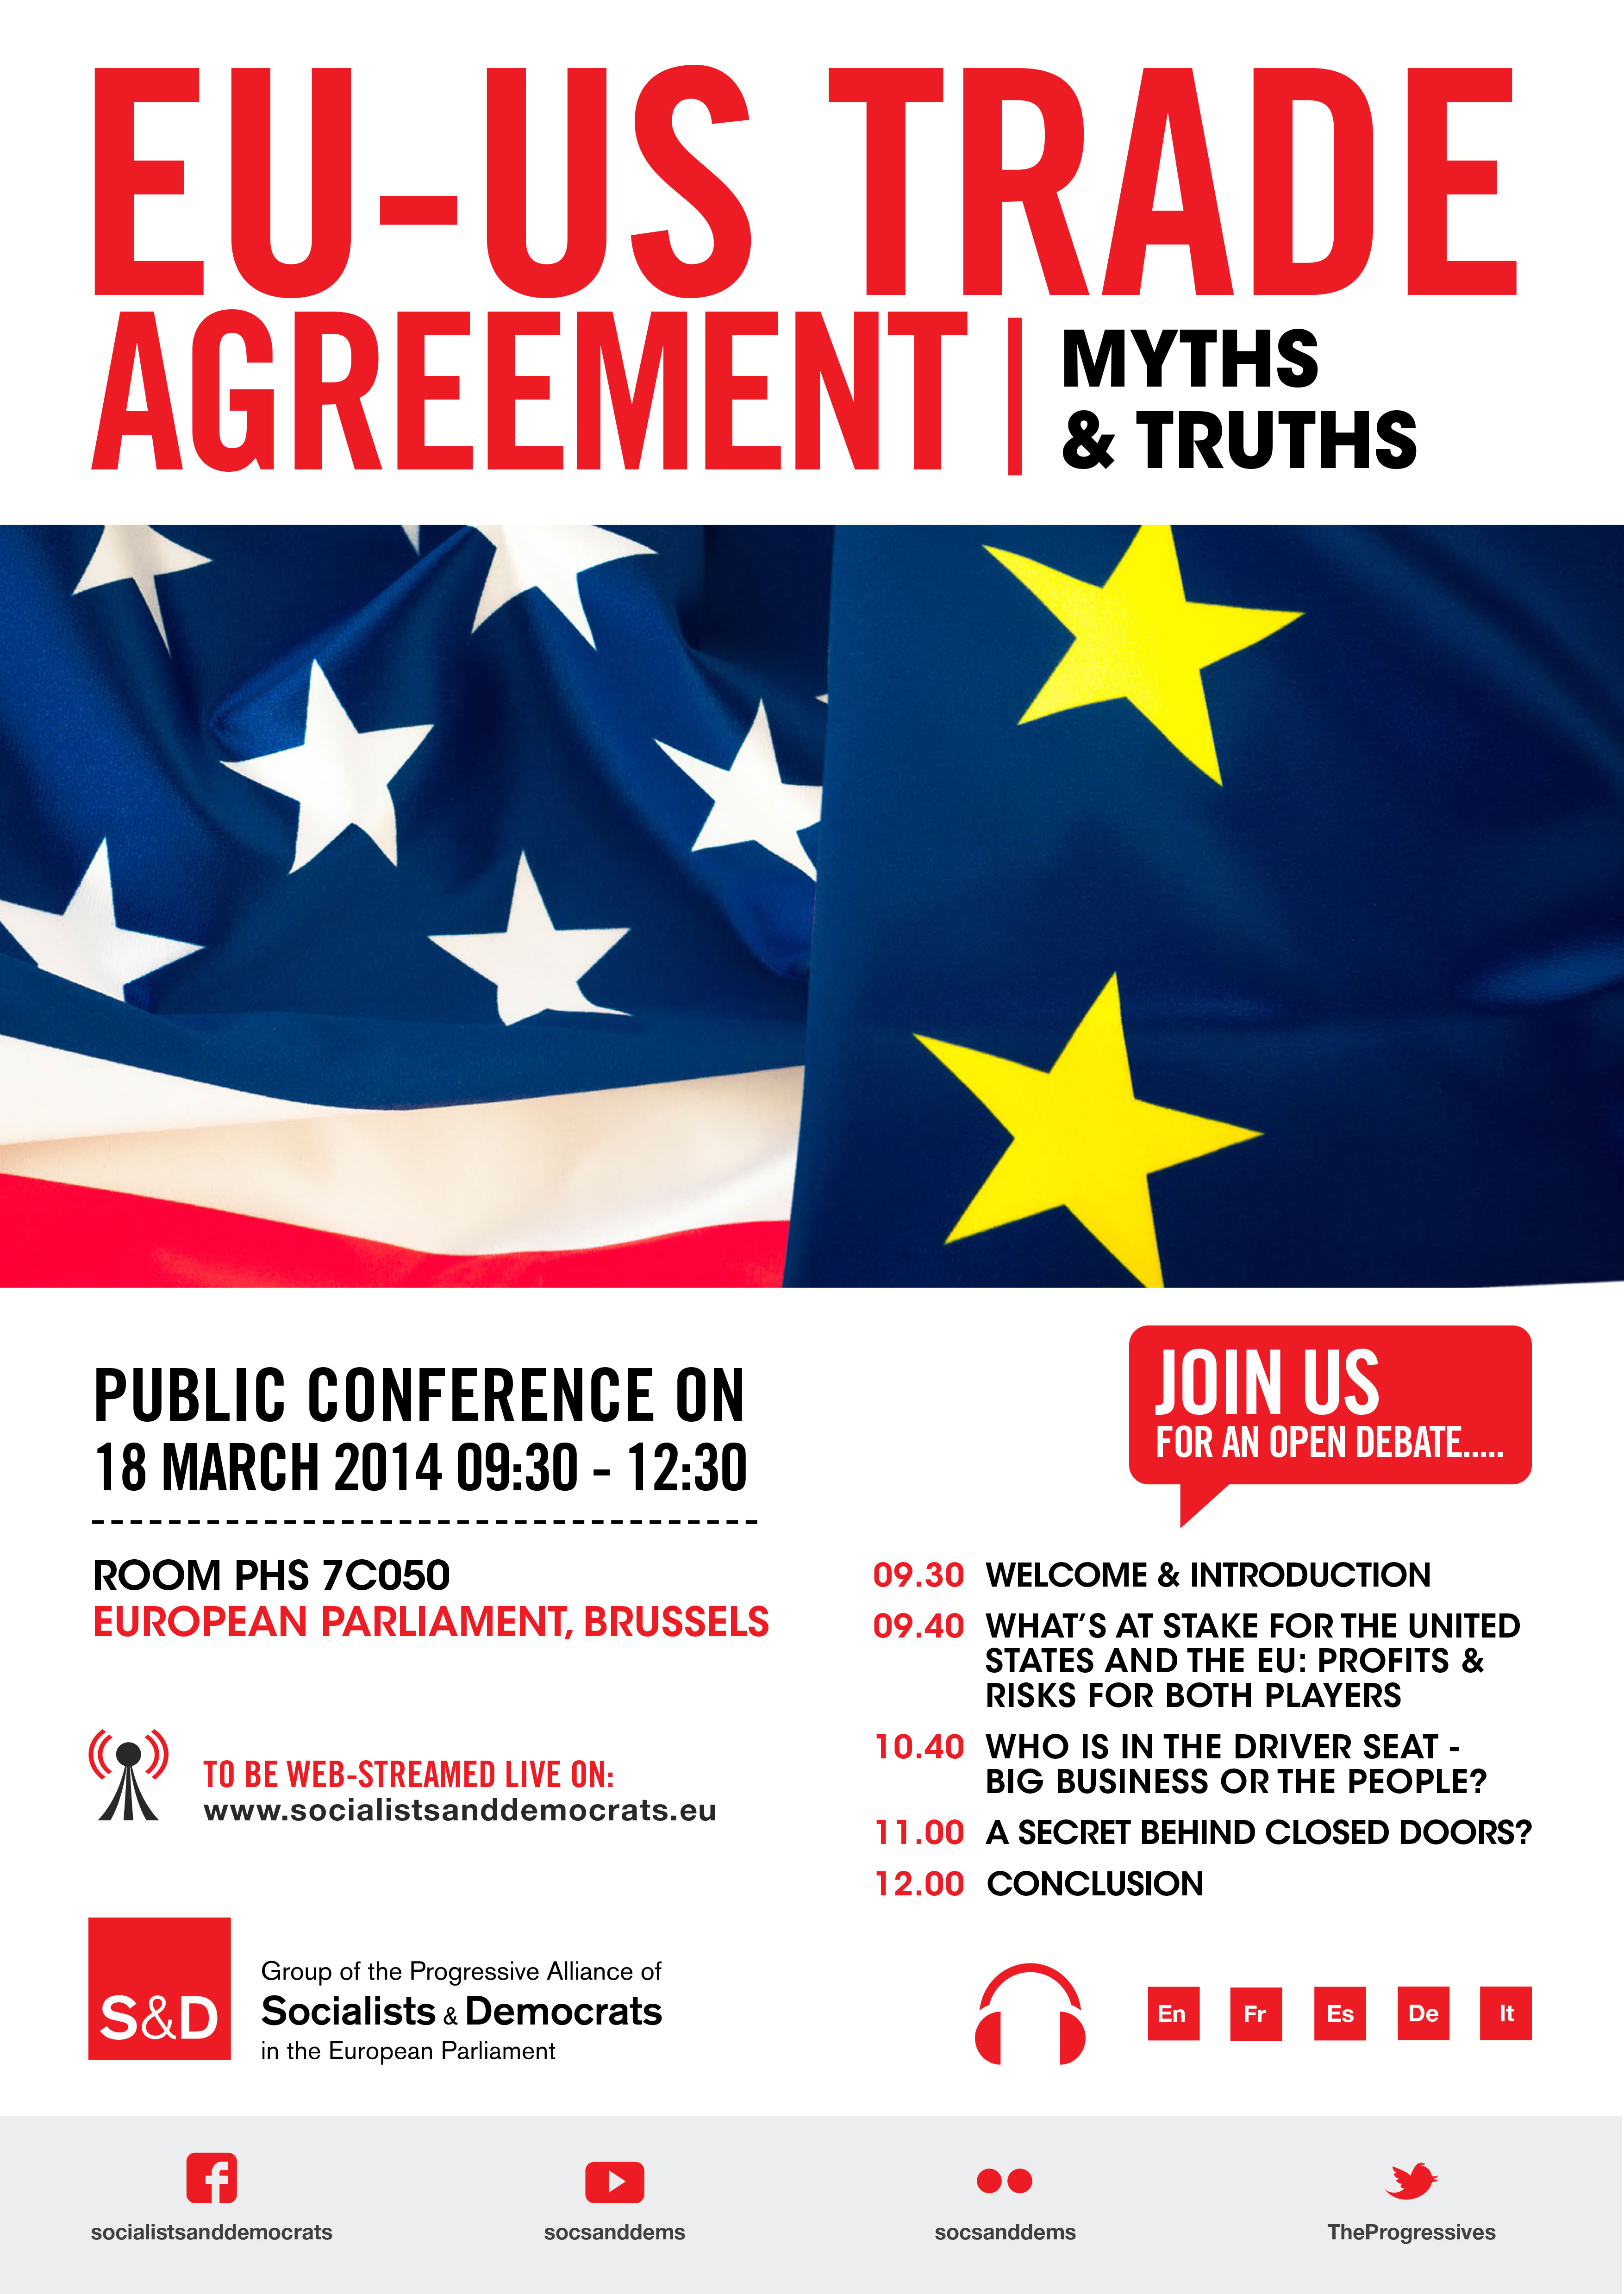 Sd conference eu us trade agreement myths and truths eu us trade agreement myths and truths platinumwayz